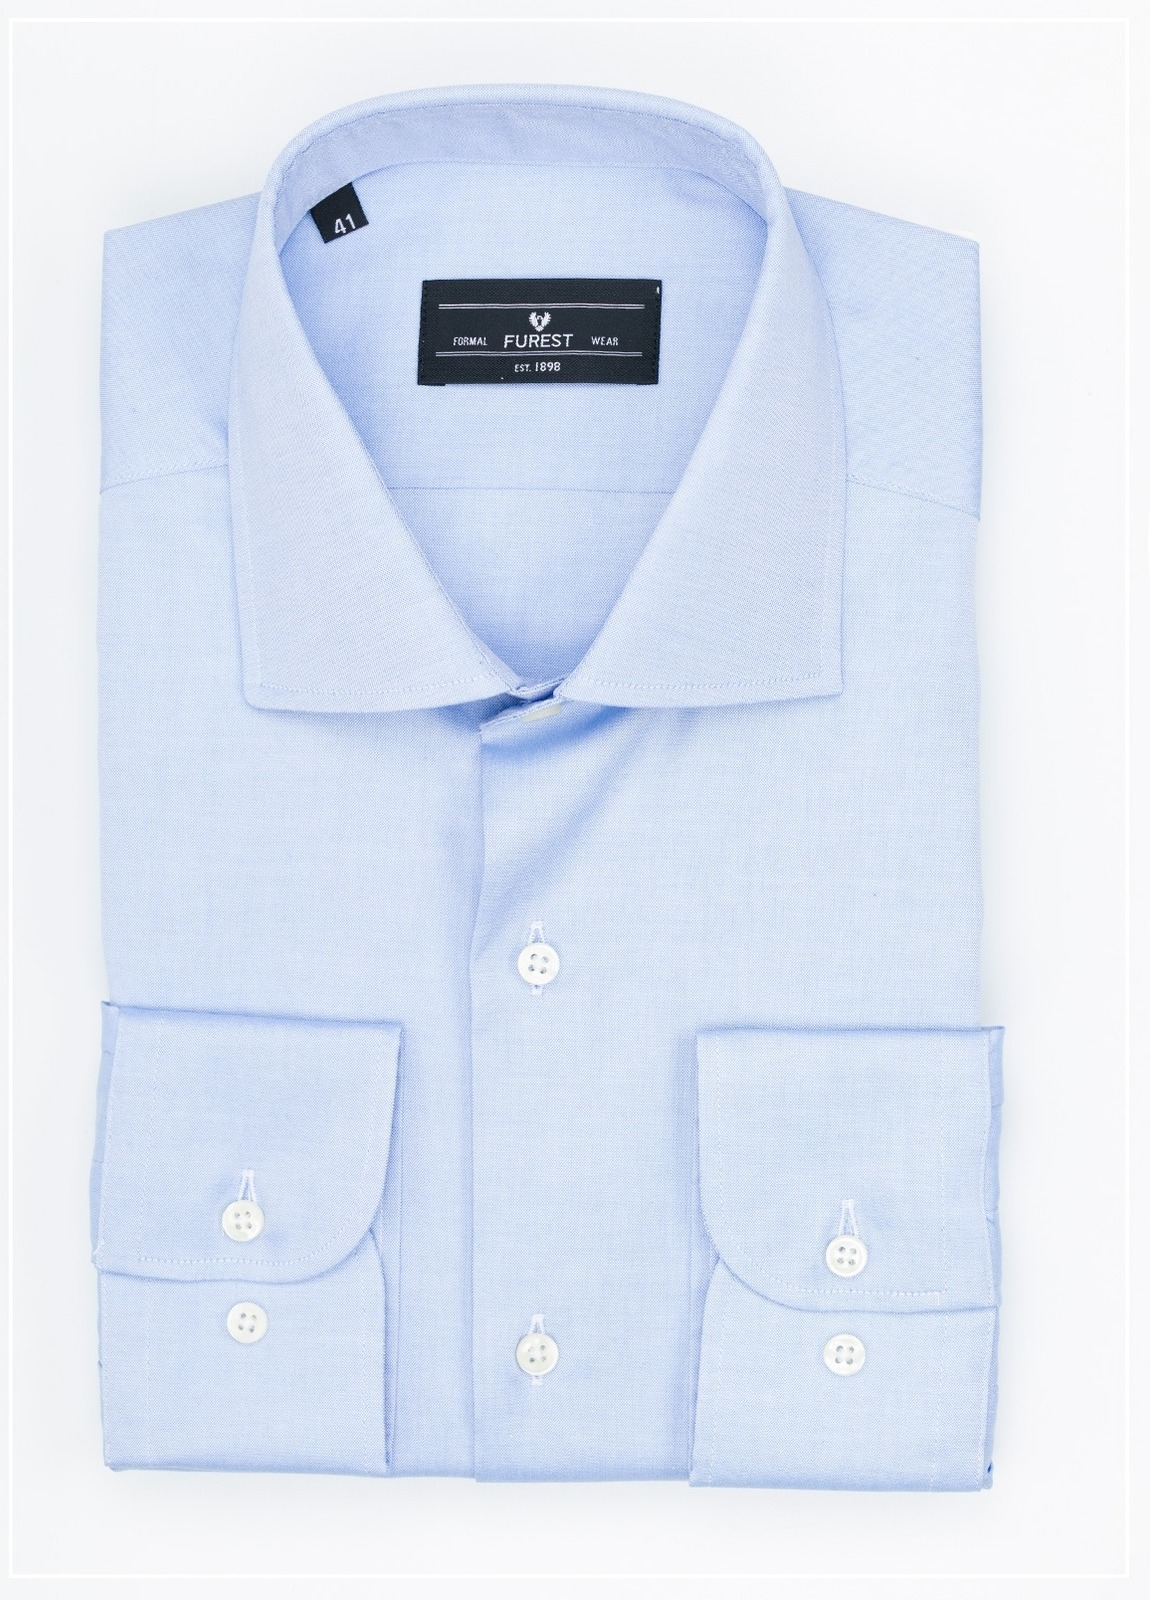 Camisa Formal Wear REGULAR FIT cuello italiano modelo NAPOLI tejido color celeste, 100% Algodón.